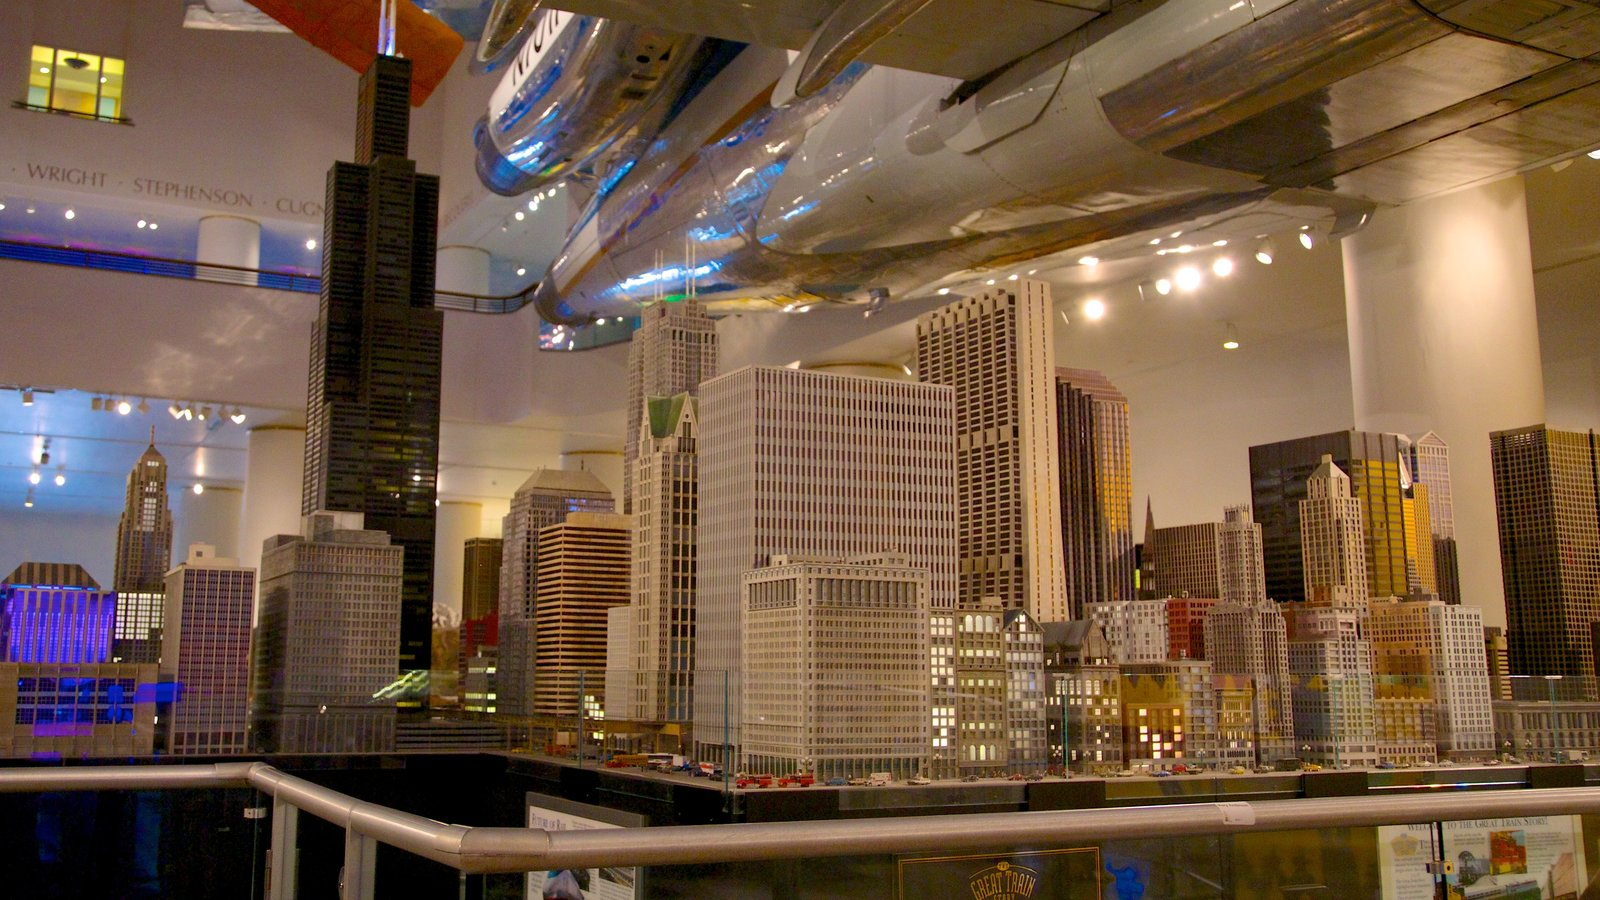 Chicago Museum of Science and Industry showing interior views